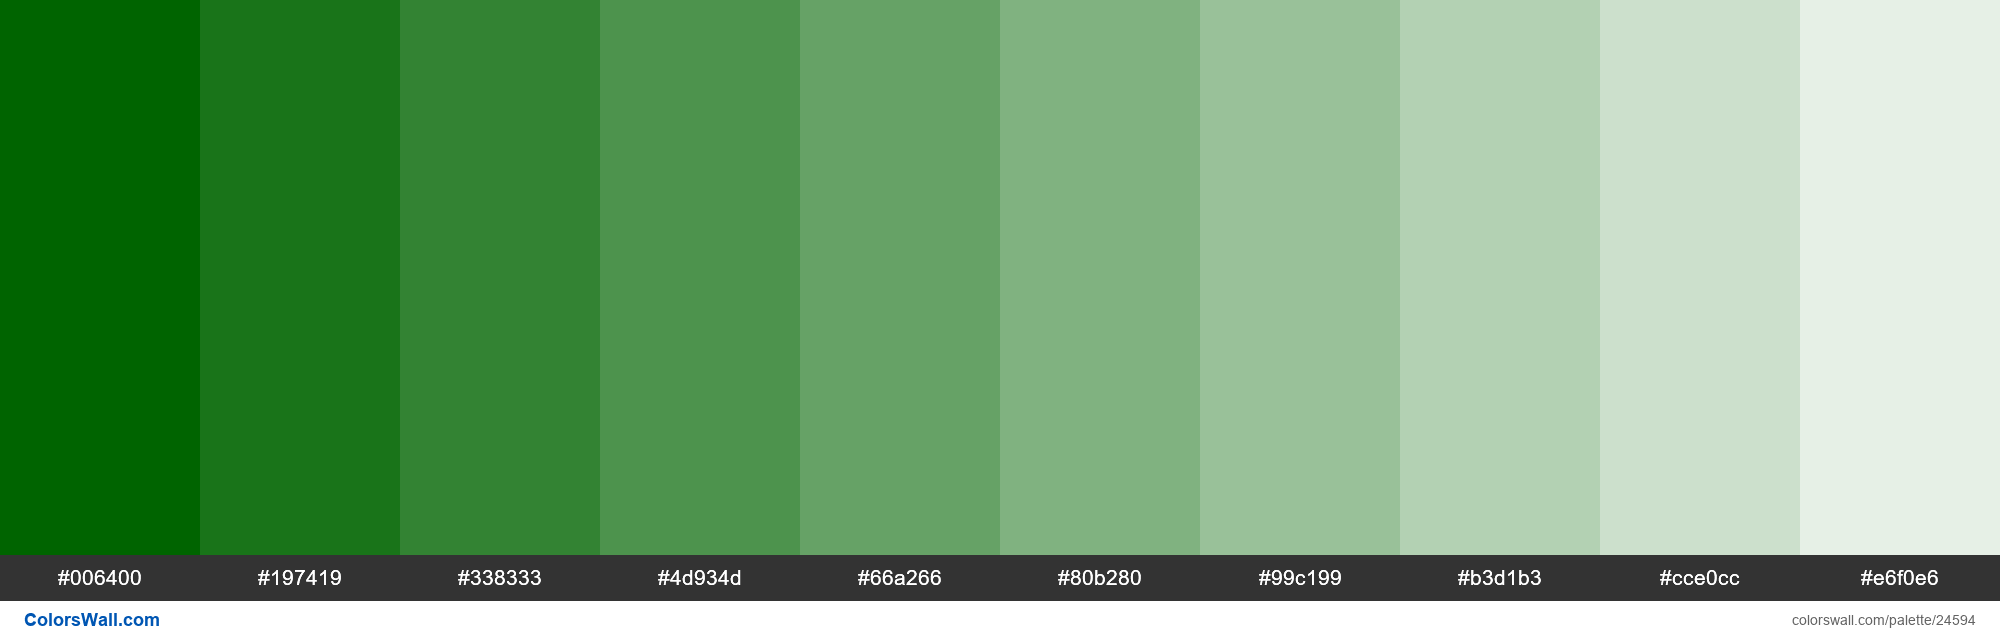 Tints of Dark Green #006400 hex color - #24594